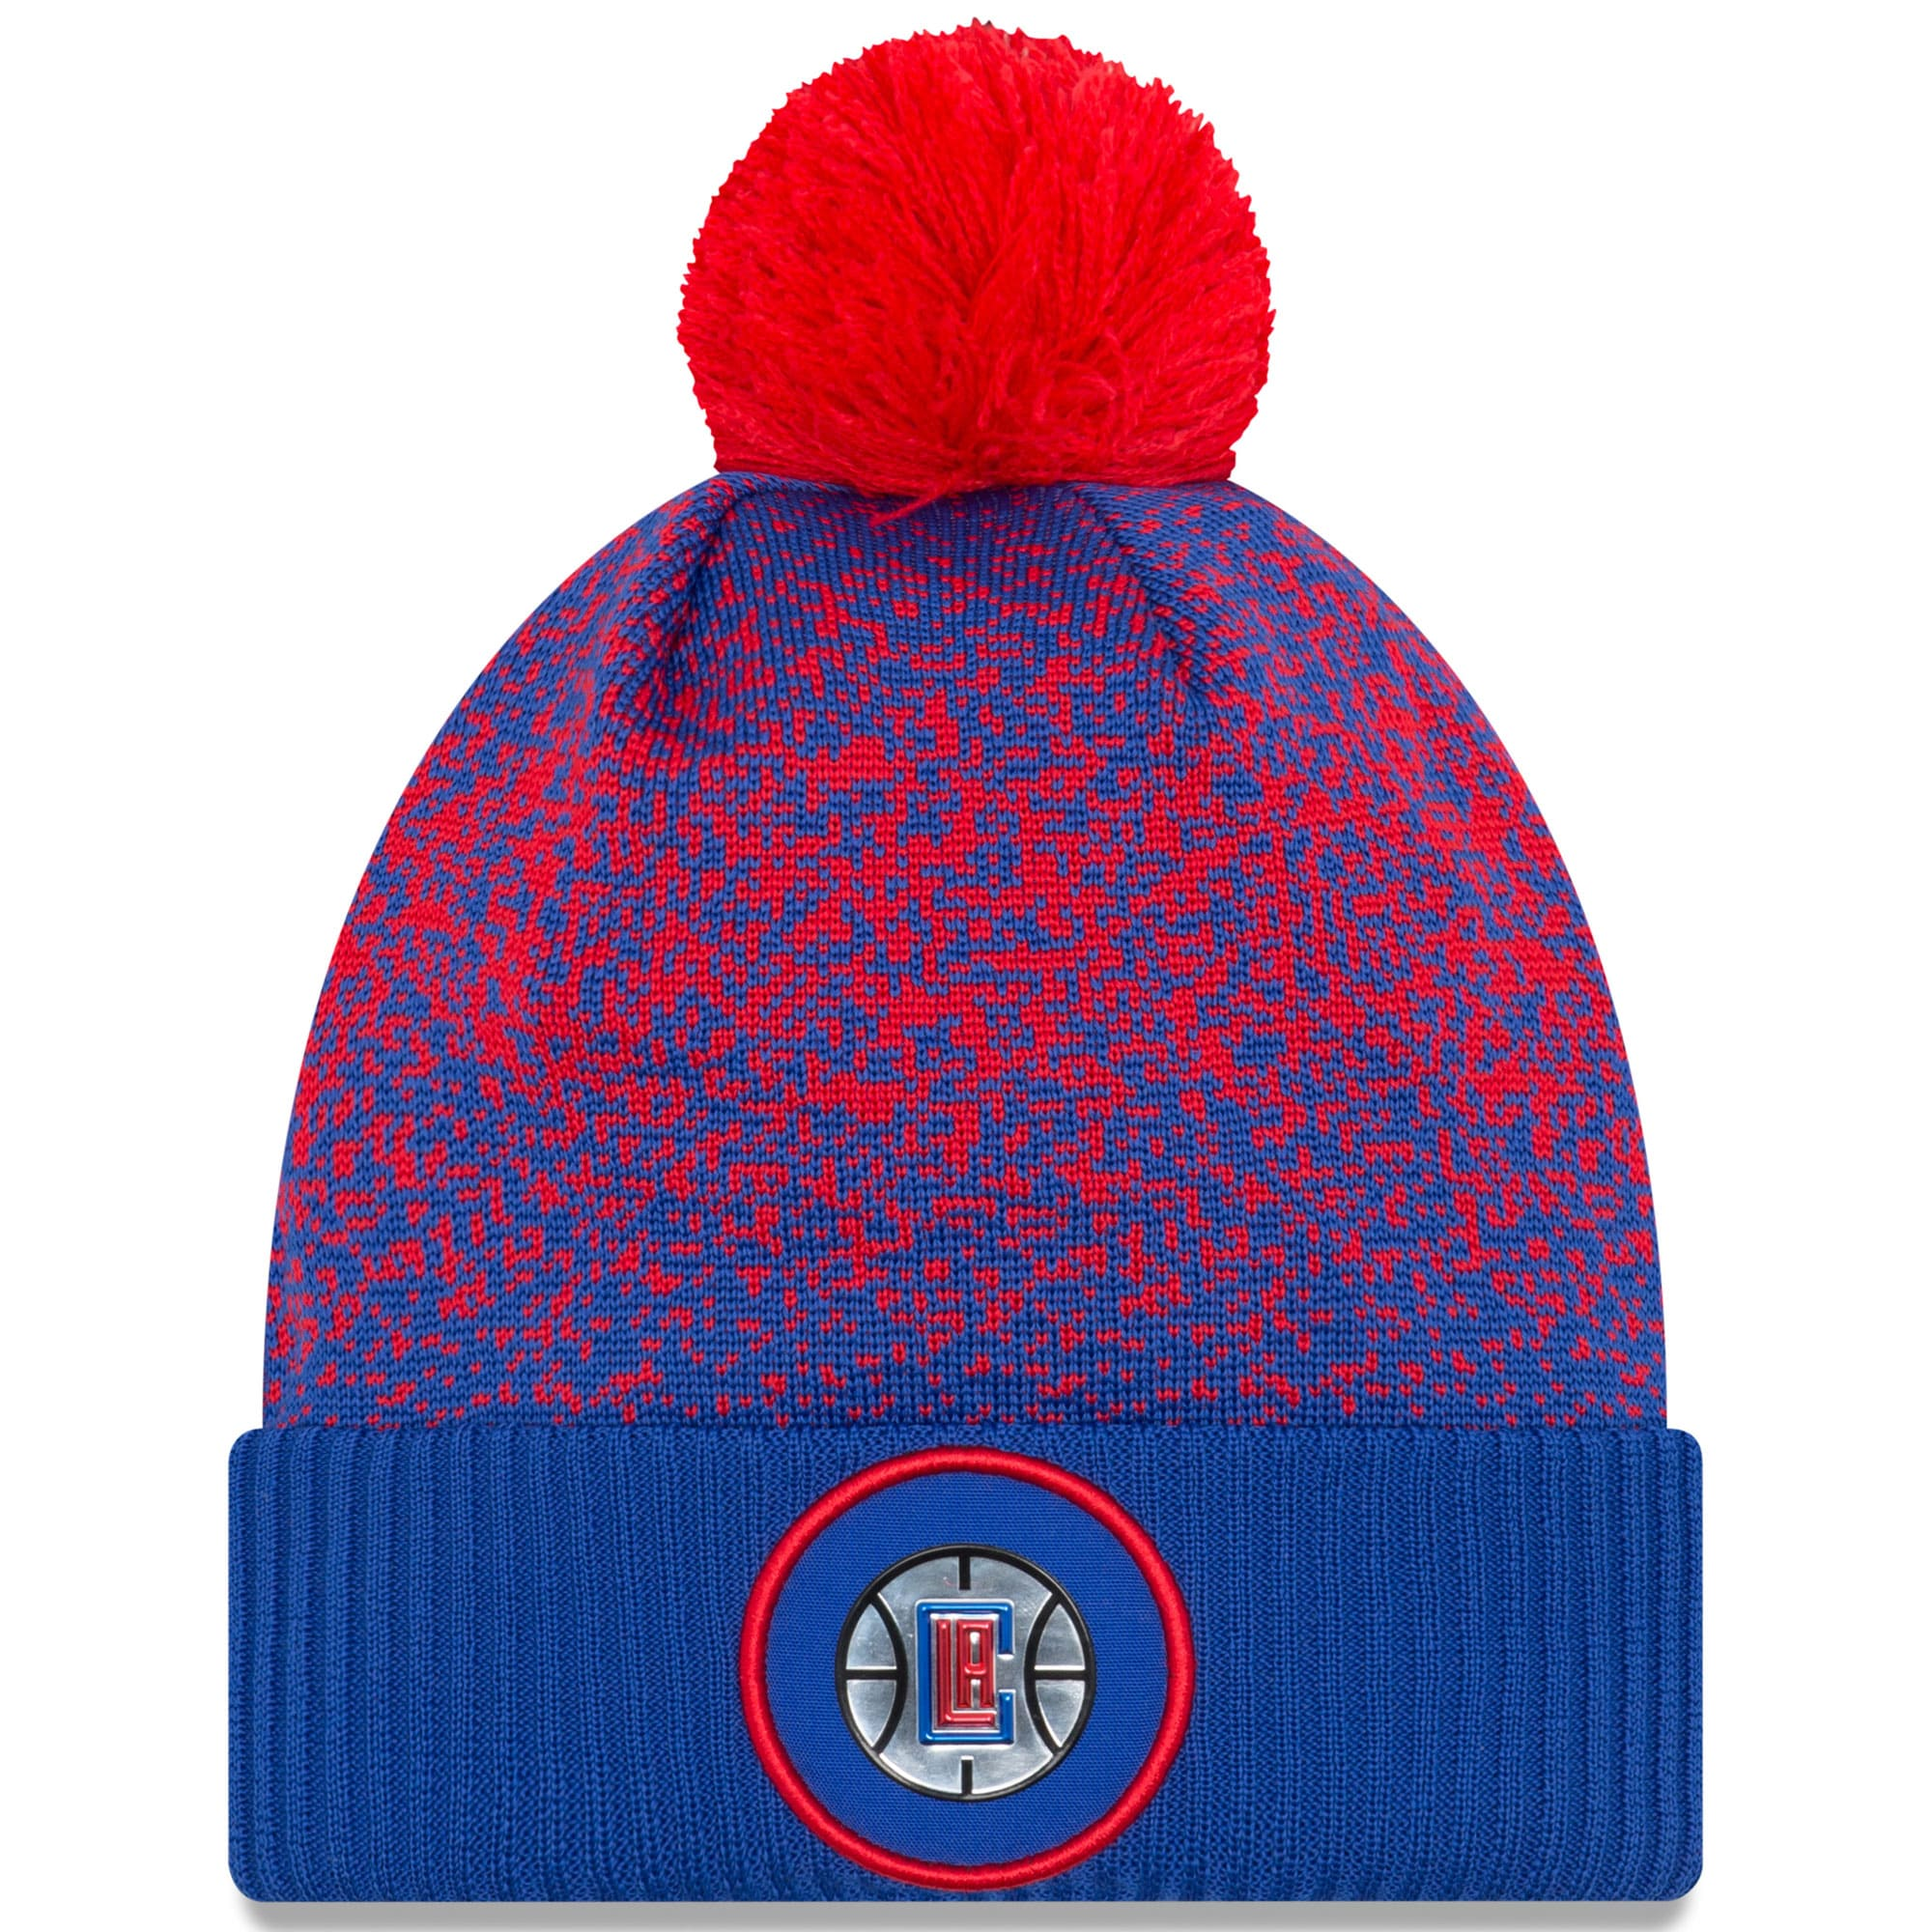 LA Clippers New Era On-Court Cuffed Knit Hat with Pom - Royal